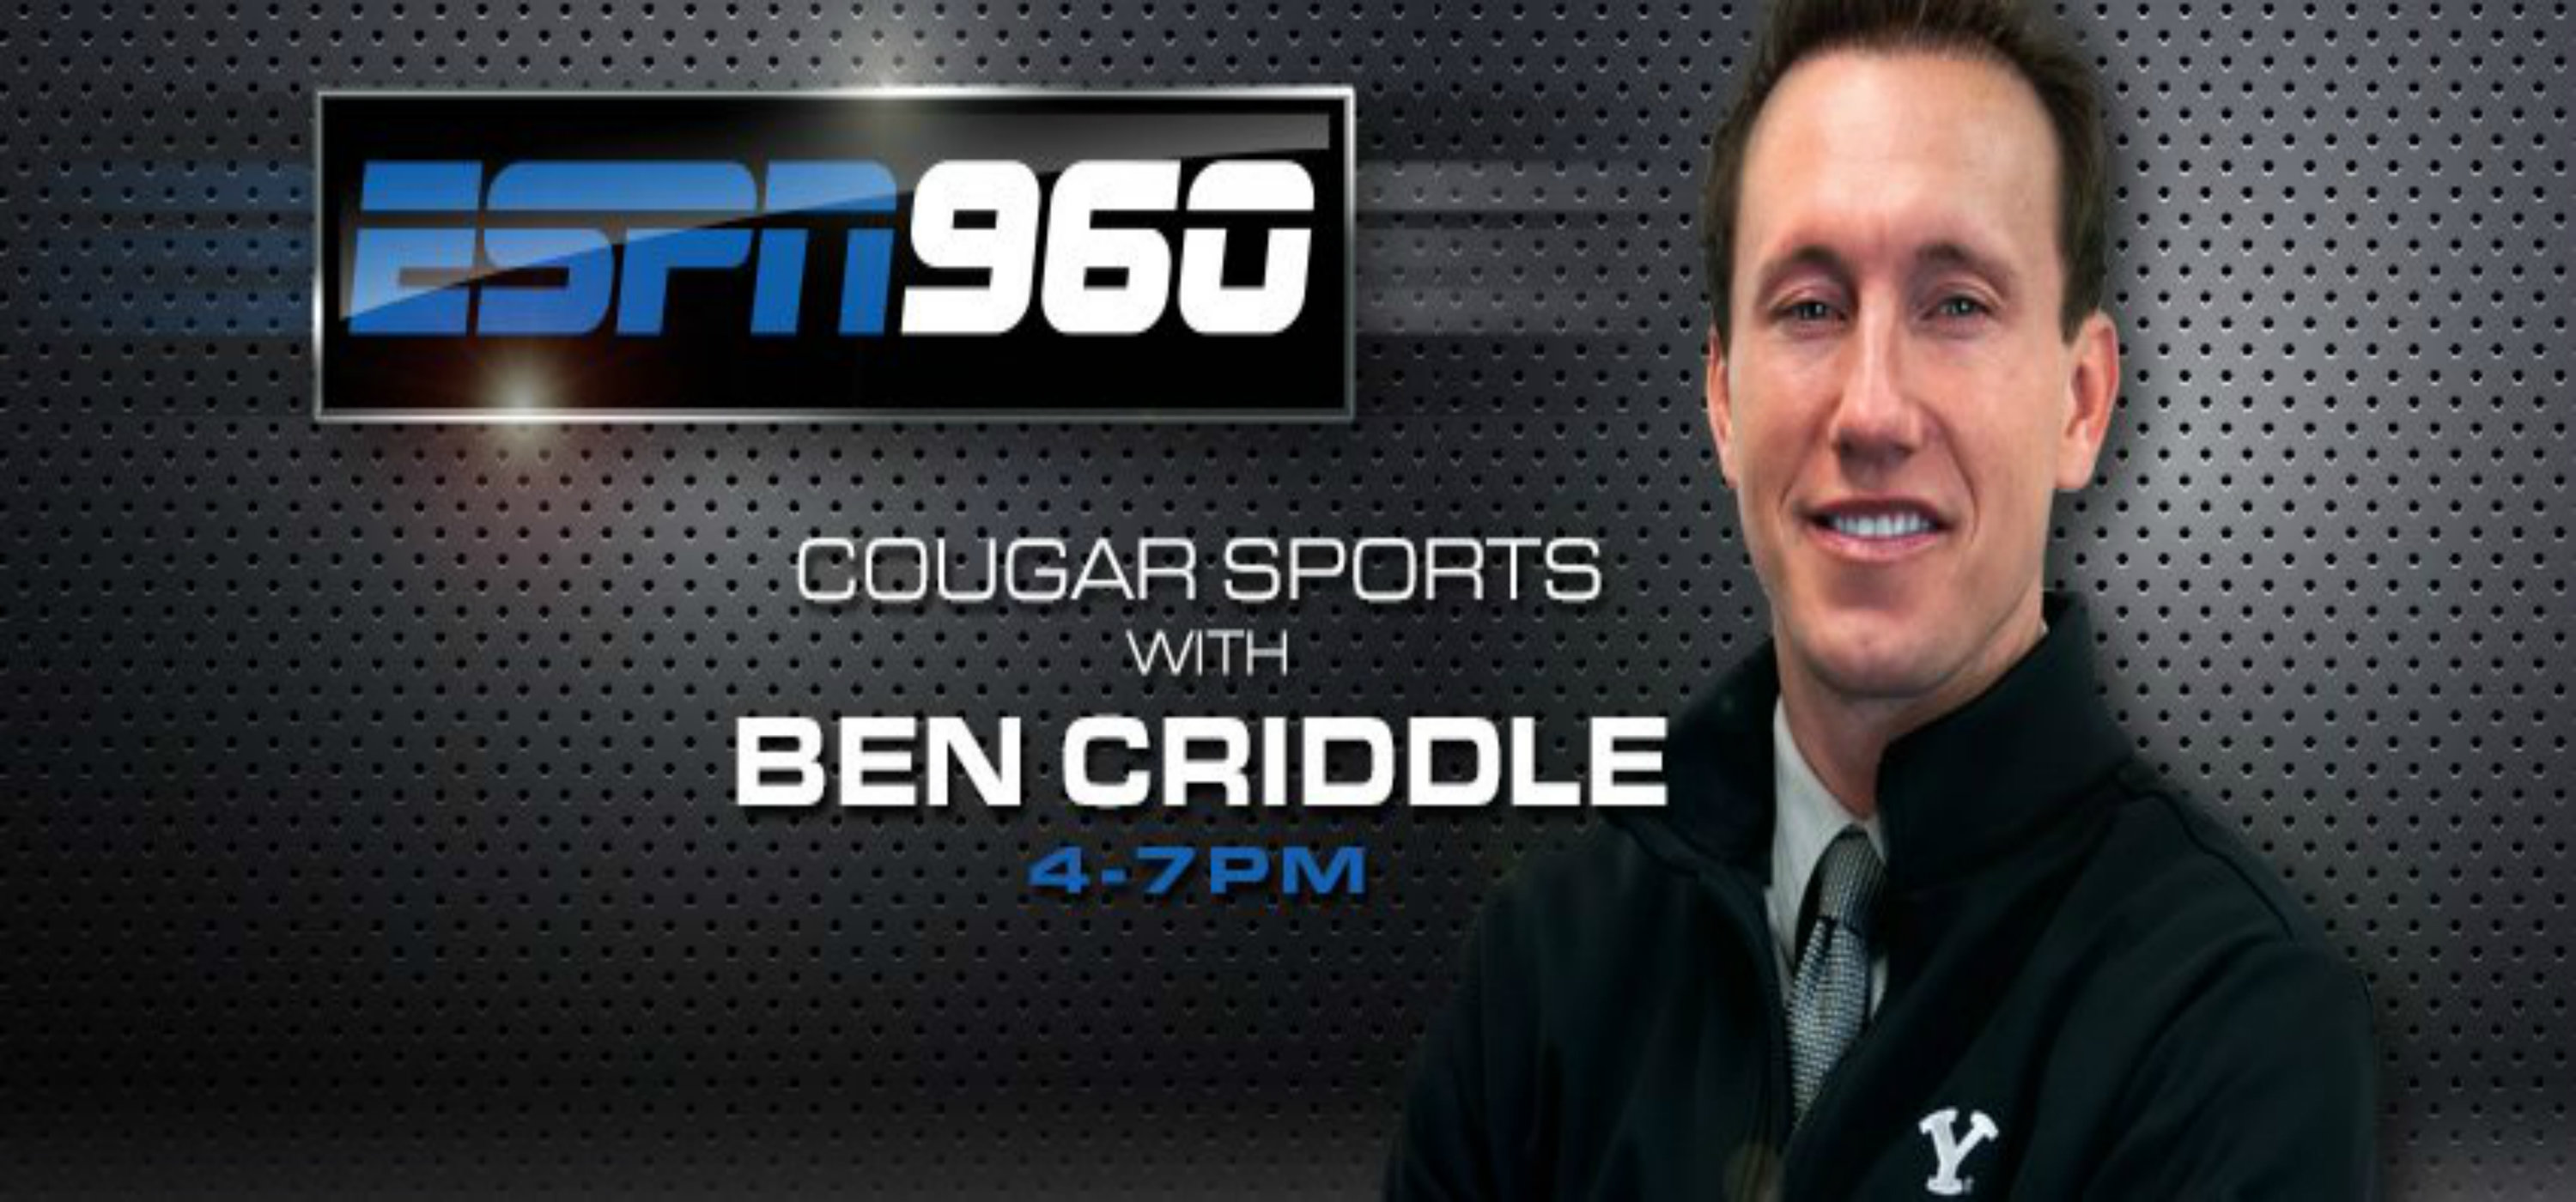 Cougar Sports with Ben Criddle